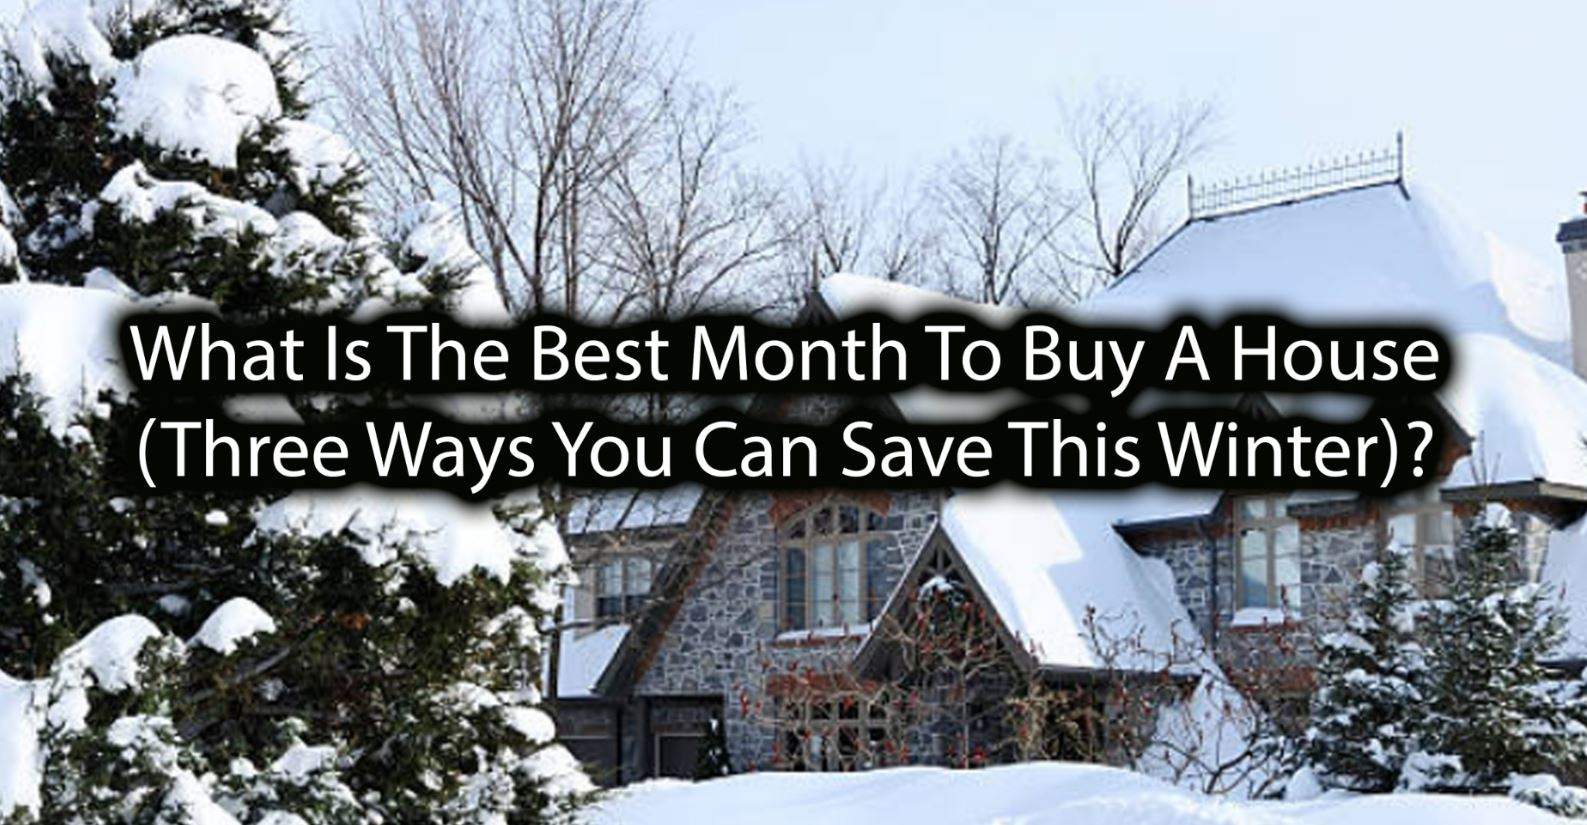 What Is The Best Month To Buy A House (Three Ways You Can Save This Winter)?